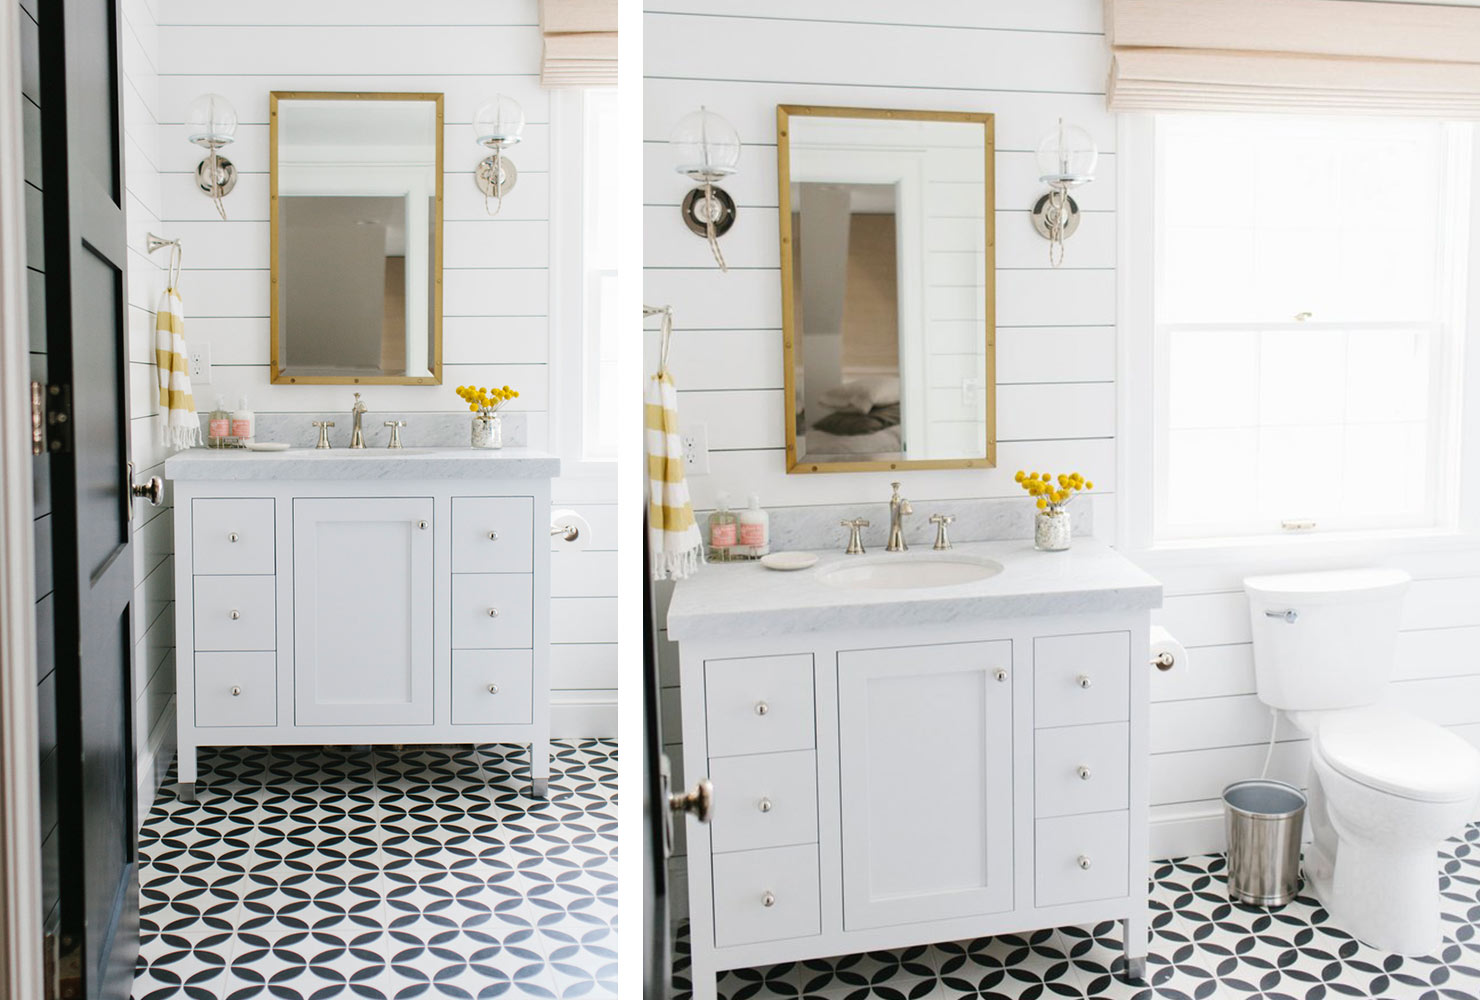 Bathroom Decoration Idea by Studio McGee - Shutterfly